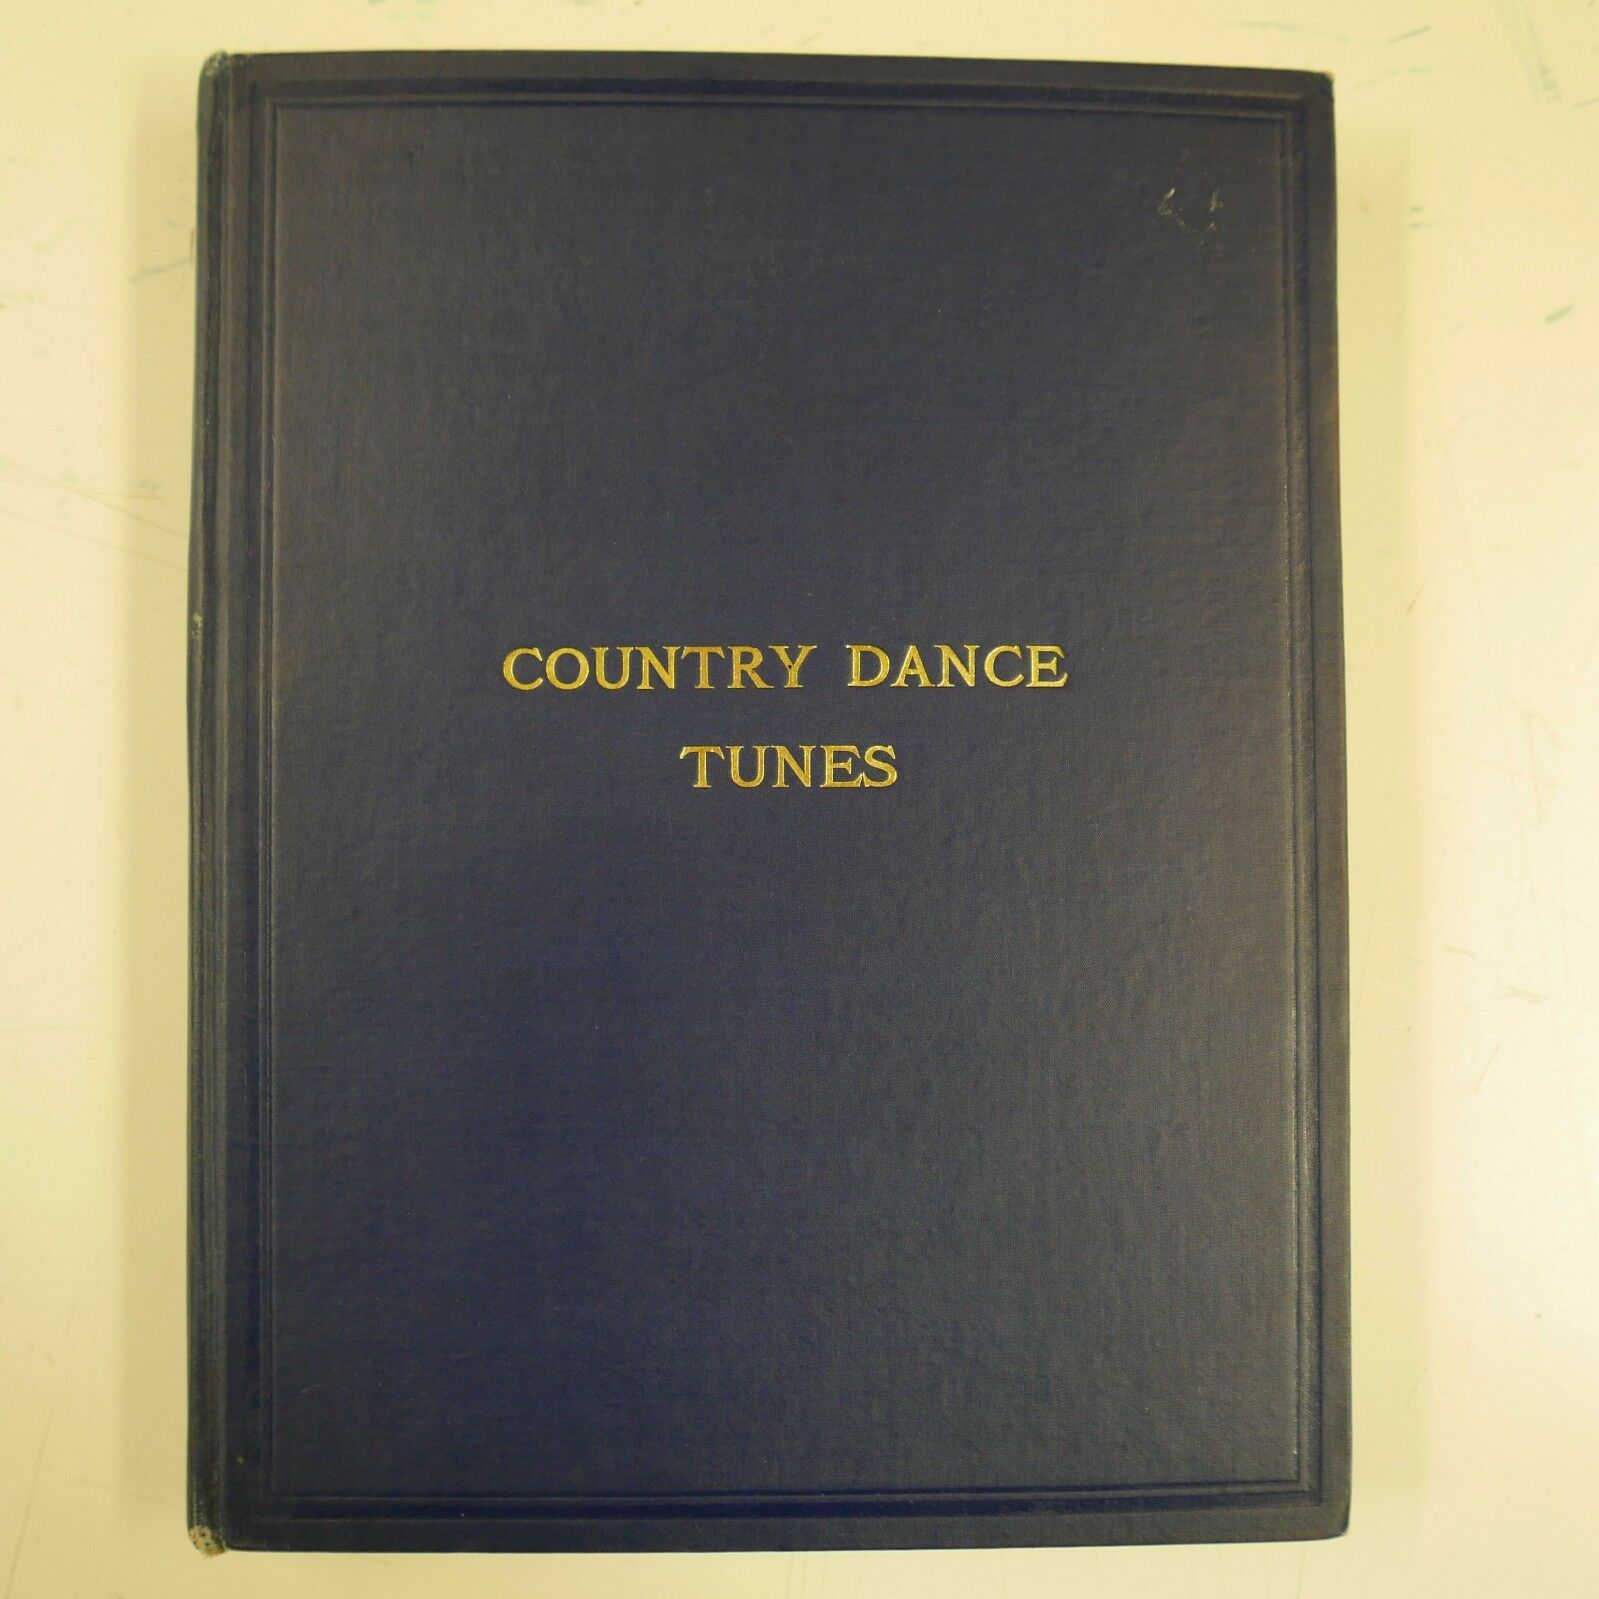 Cecil sharp COUNTRY DANCE TUNES set x - xi , bound into one volume